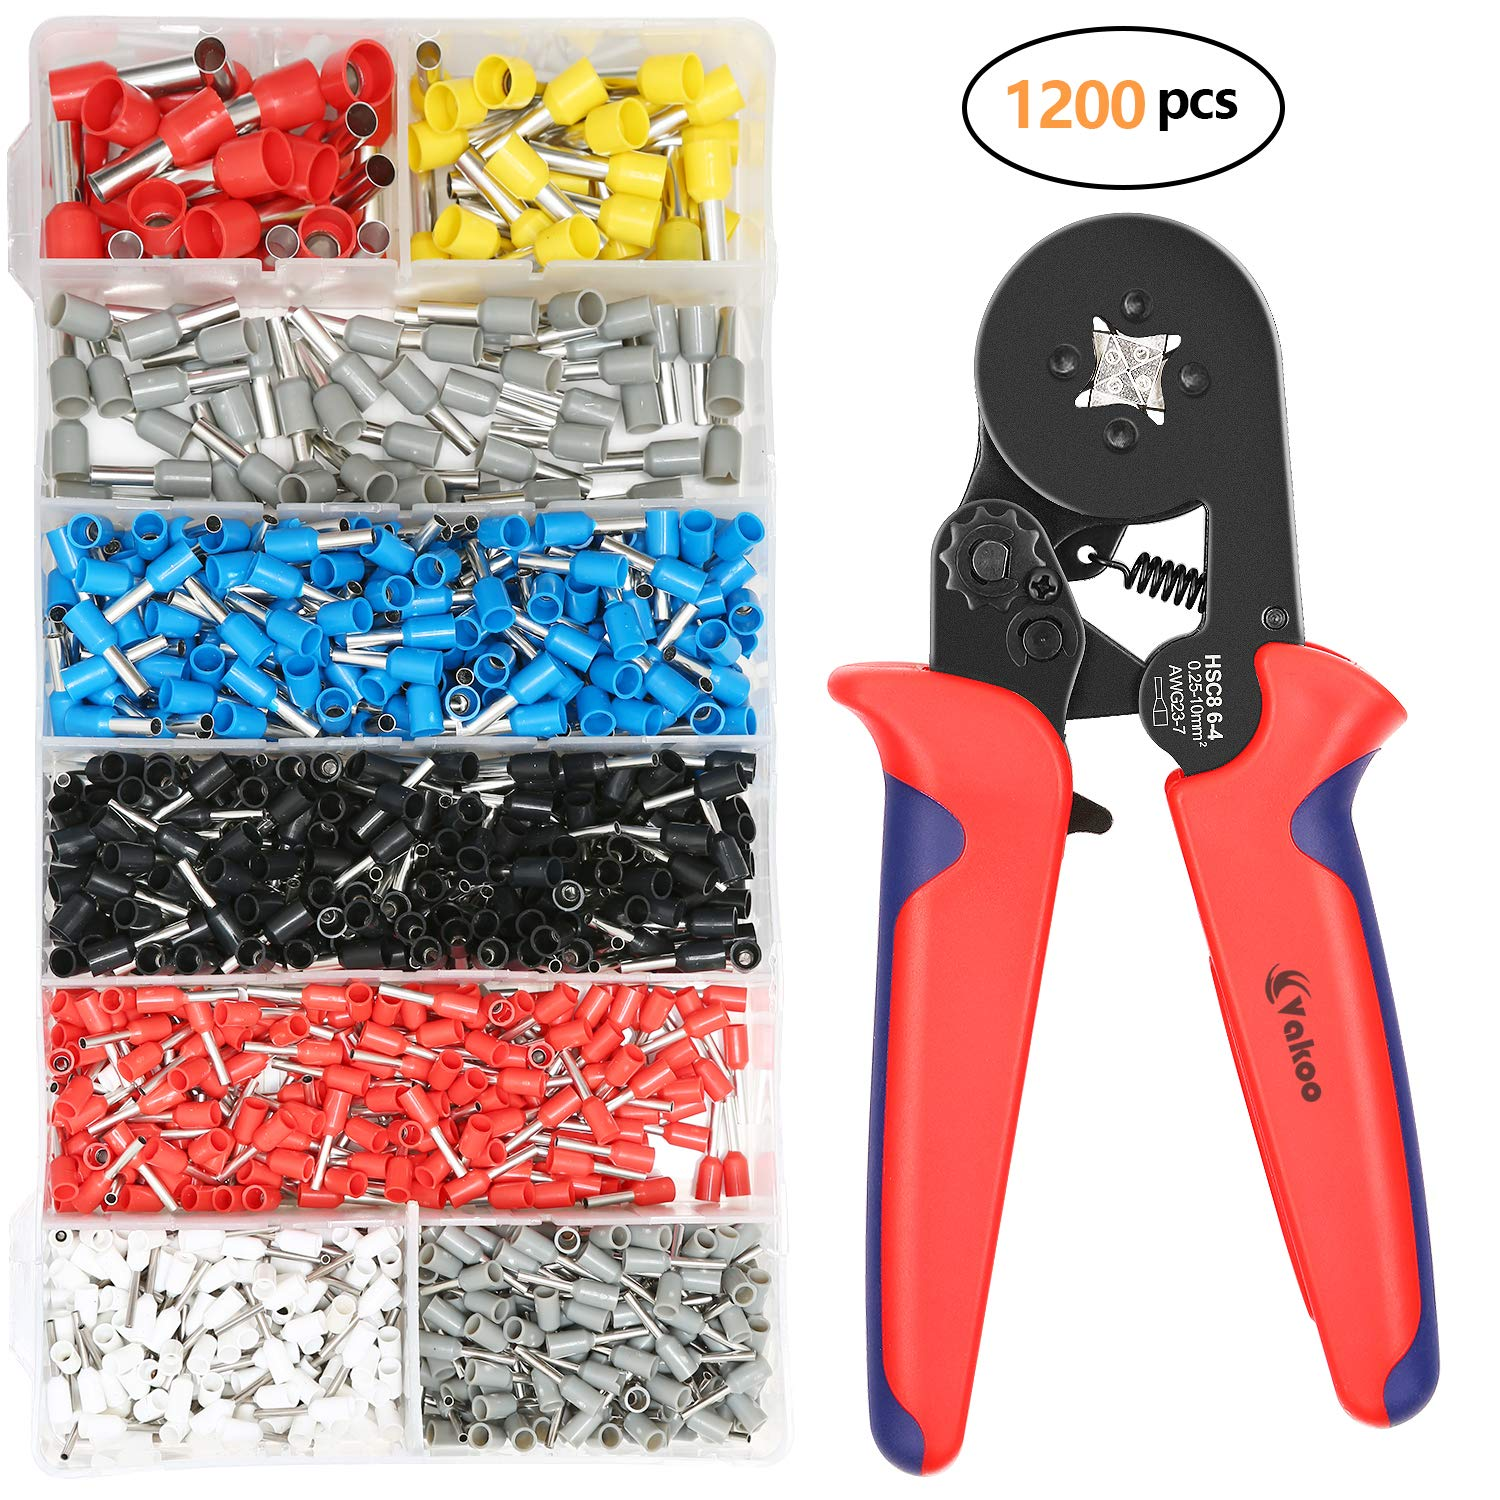 Crimper Tool Kit - VAKOO AWG 23-7 (0.25-10 mm²) Crimping Pliers Set - with 1200 PCS Wire Ferrule Terminals Kit Insulated for Auto and Home Electrical Projects